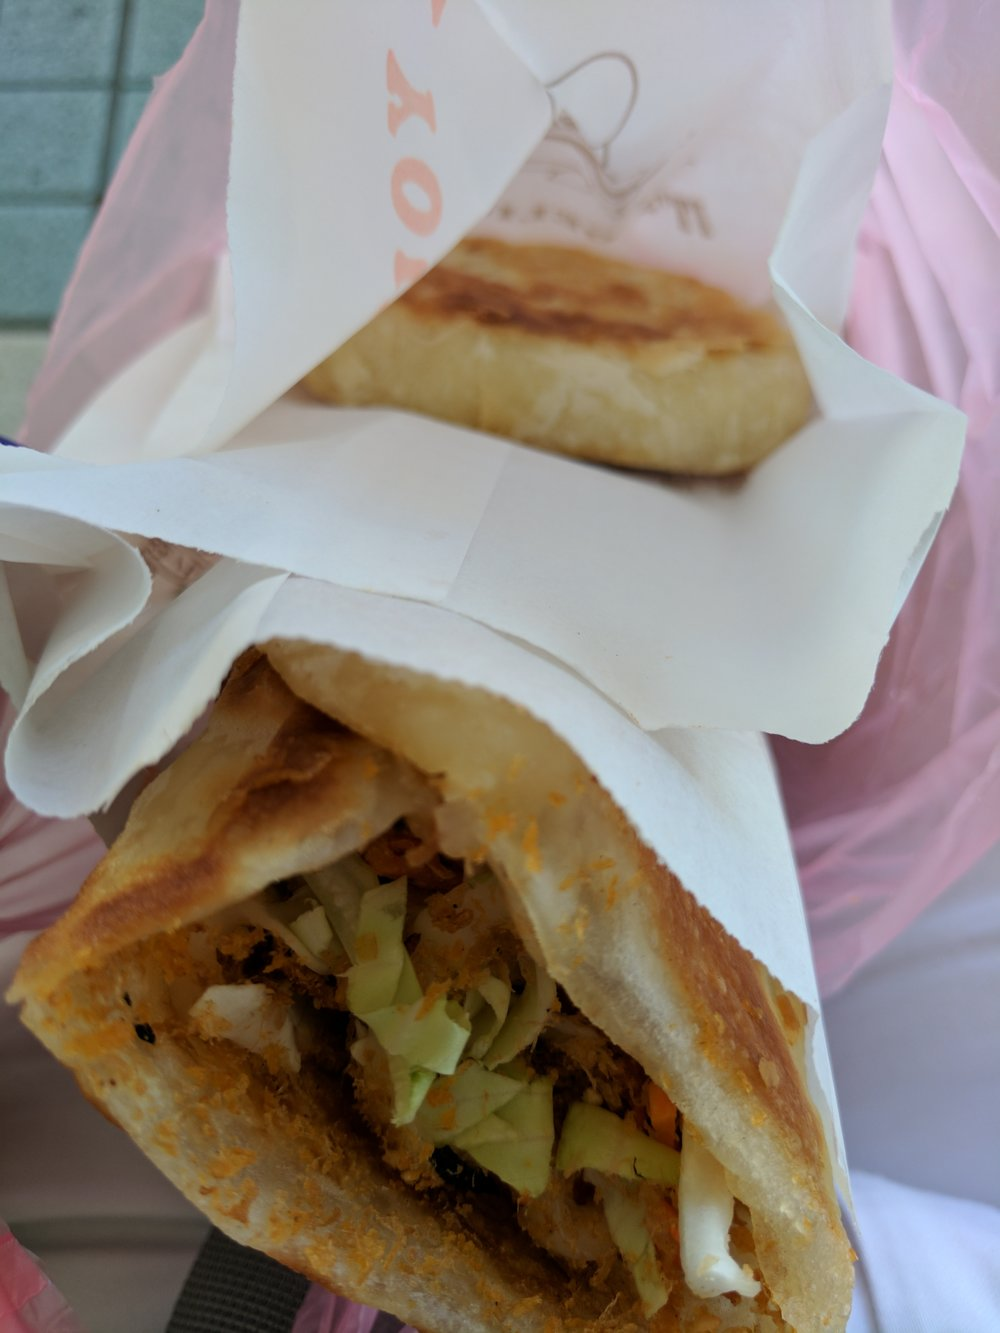 cheap, delicious street food. this crepe thing was soooo good. shao bing with shredded turnips inside wasn't bad.